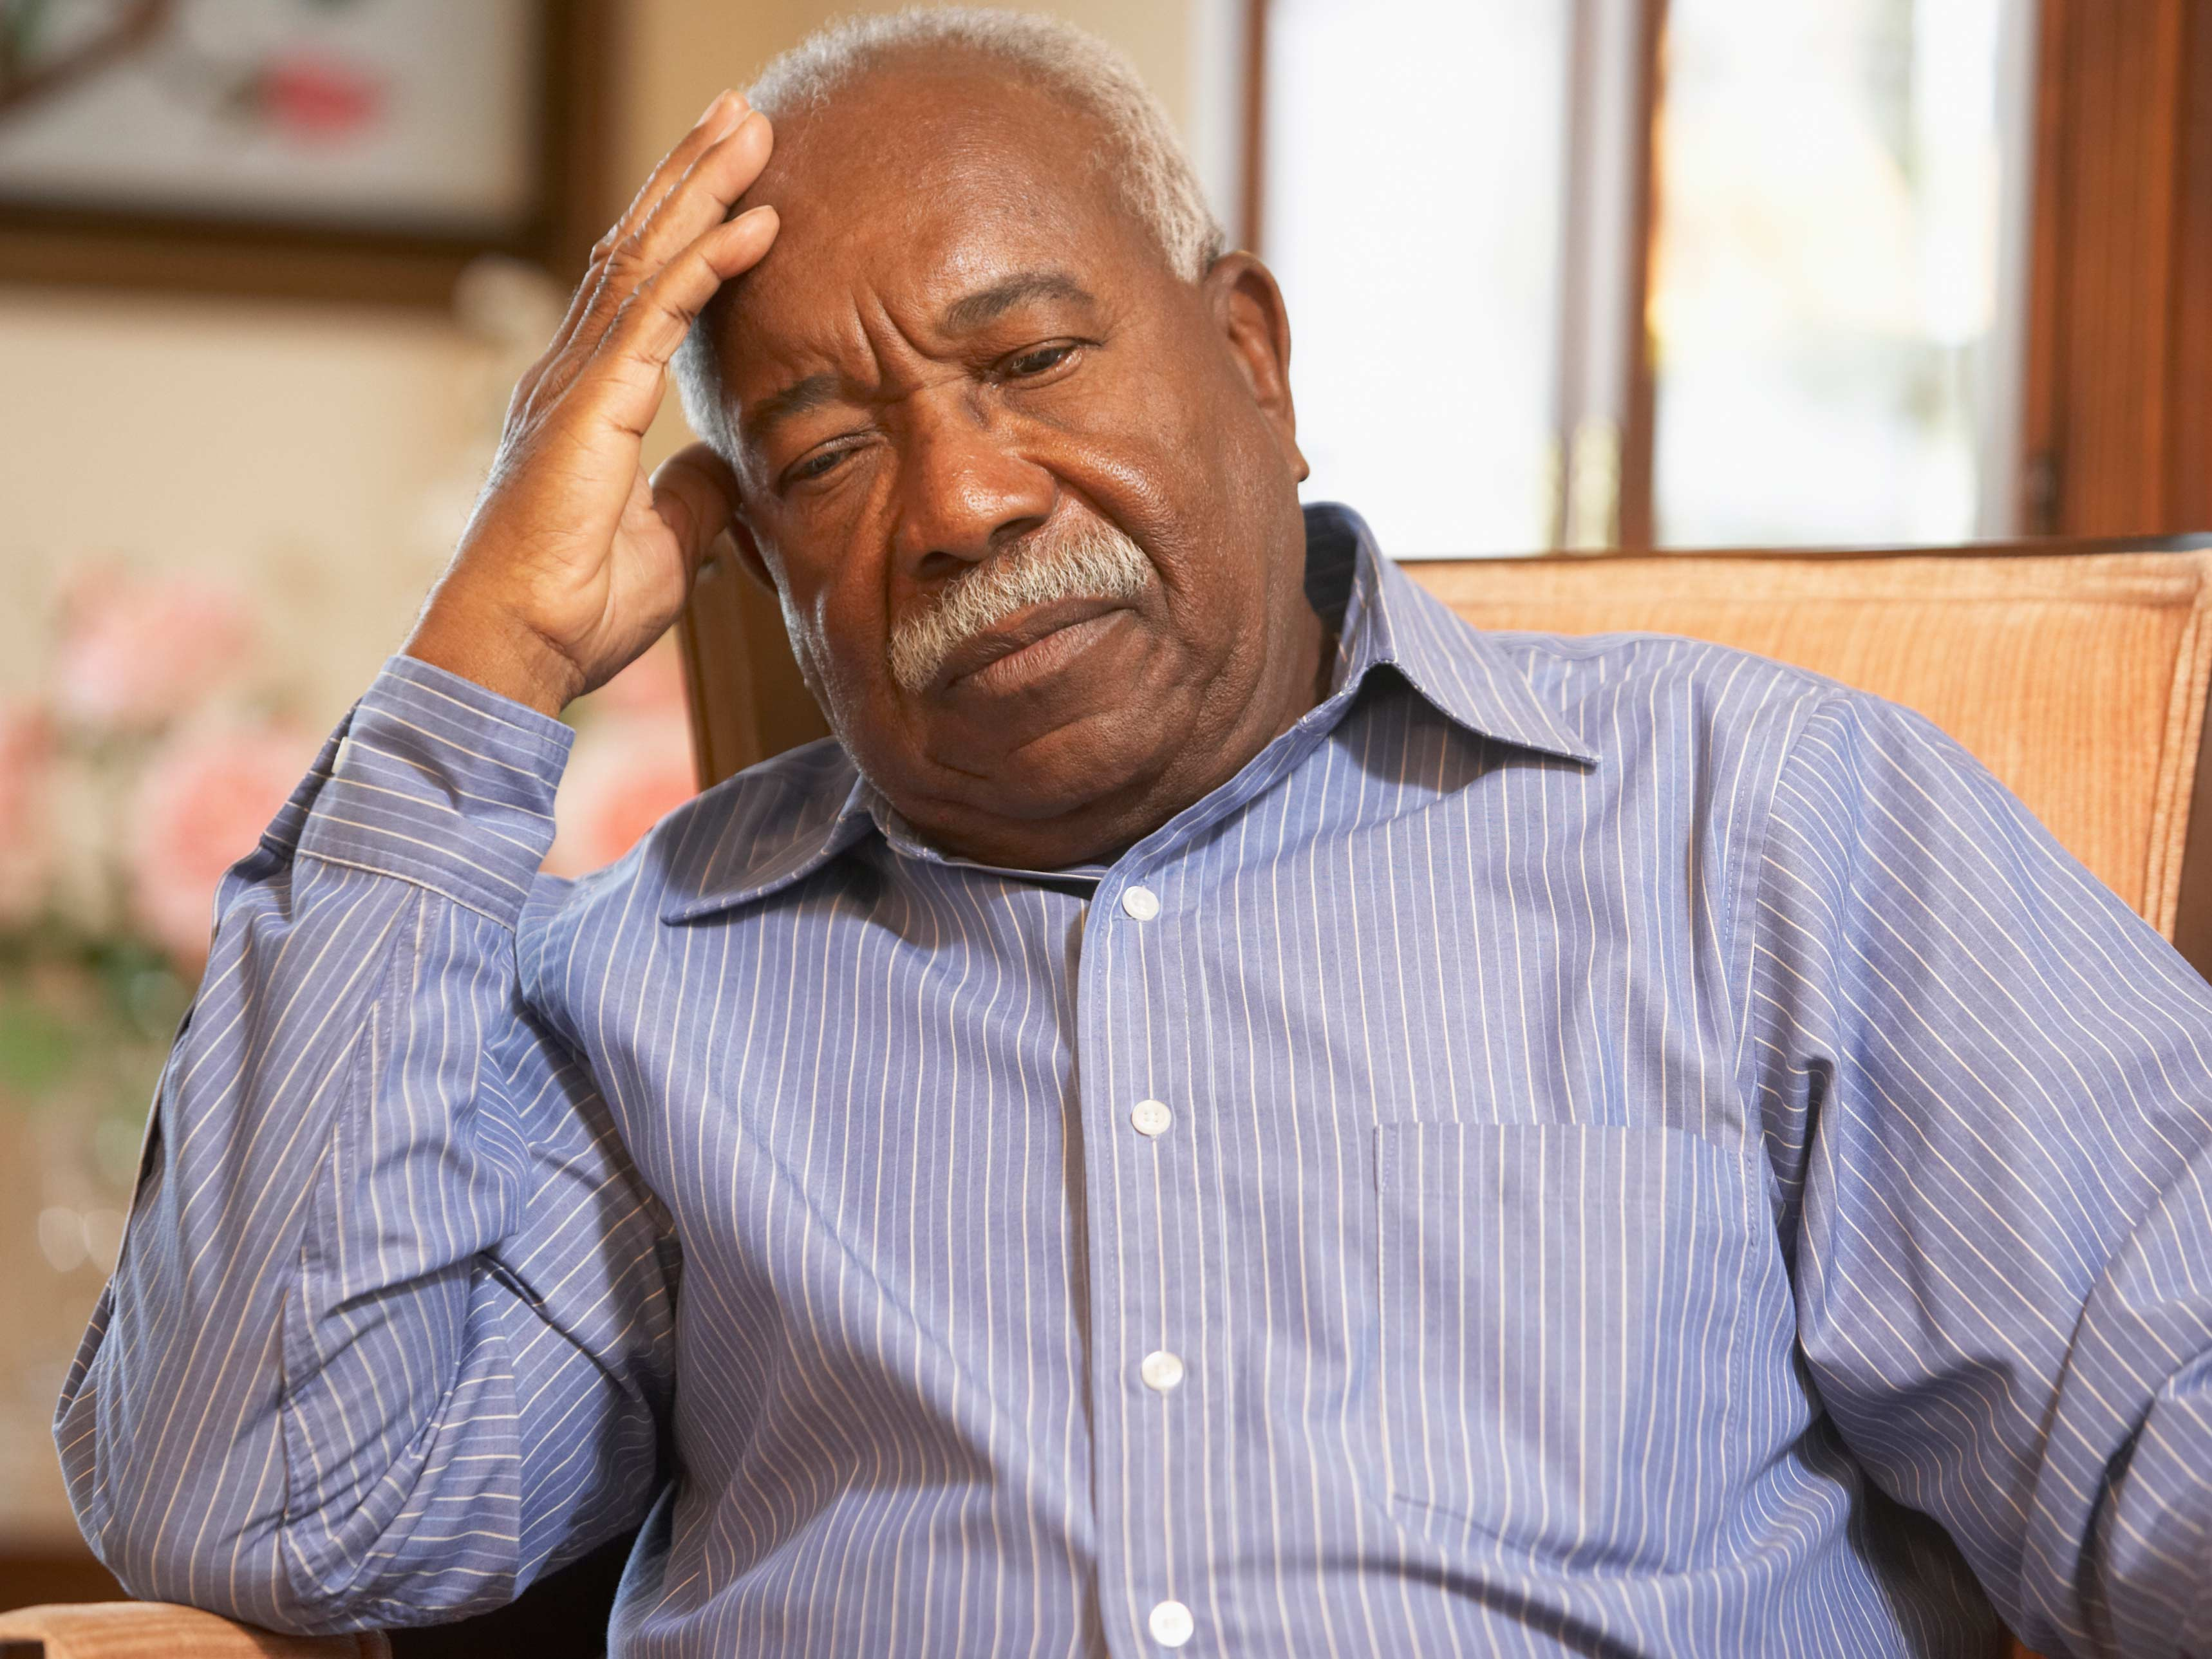 Six ways to deal with a prostatitis 'flare-up'